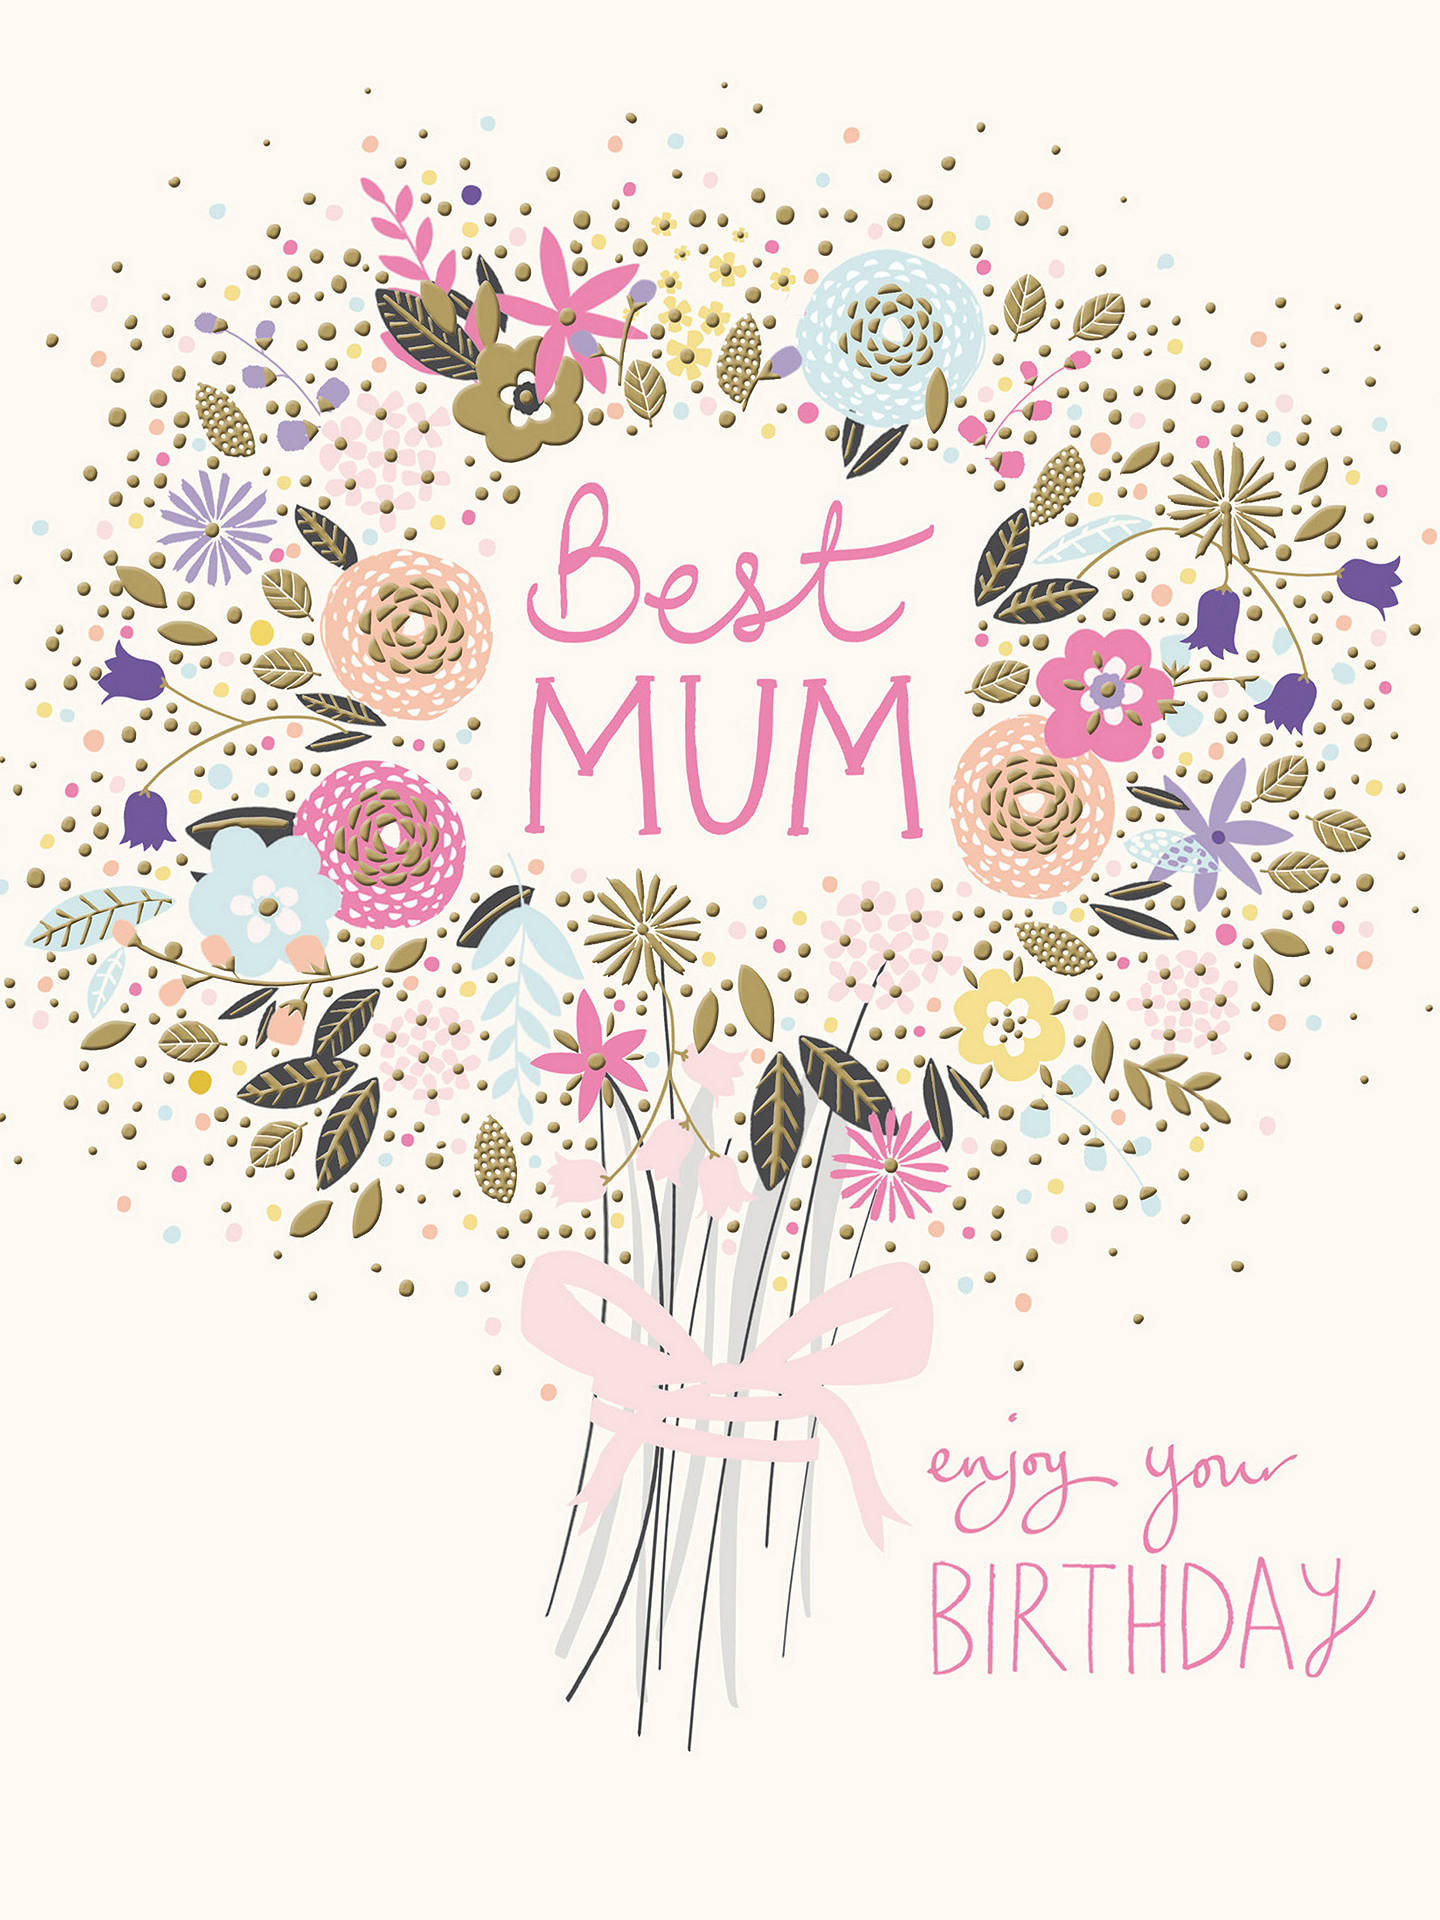 BuyWoodmansterne Best Mum Birthday Card Online At Johnlewis